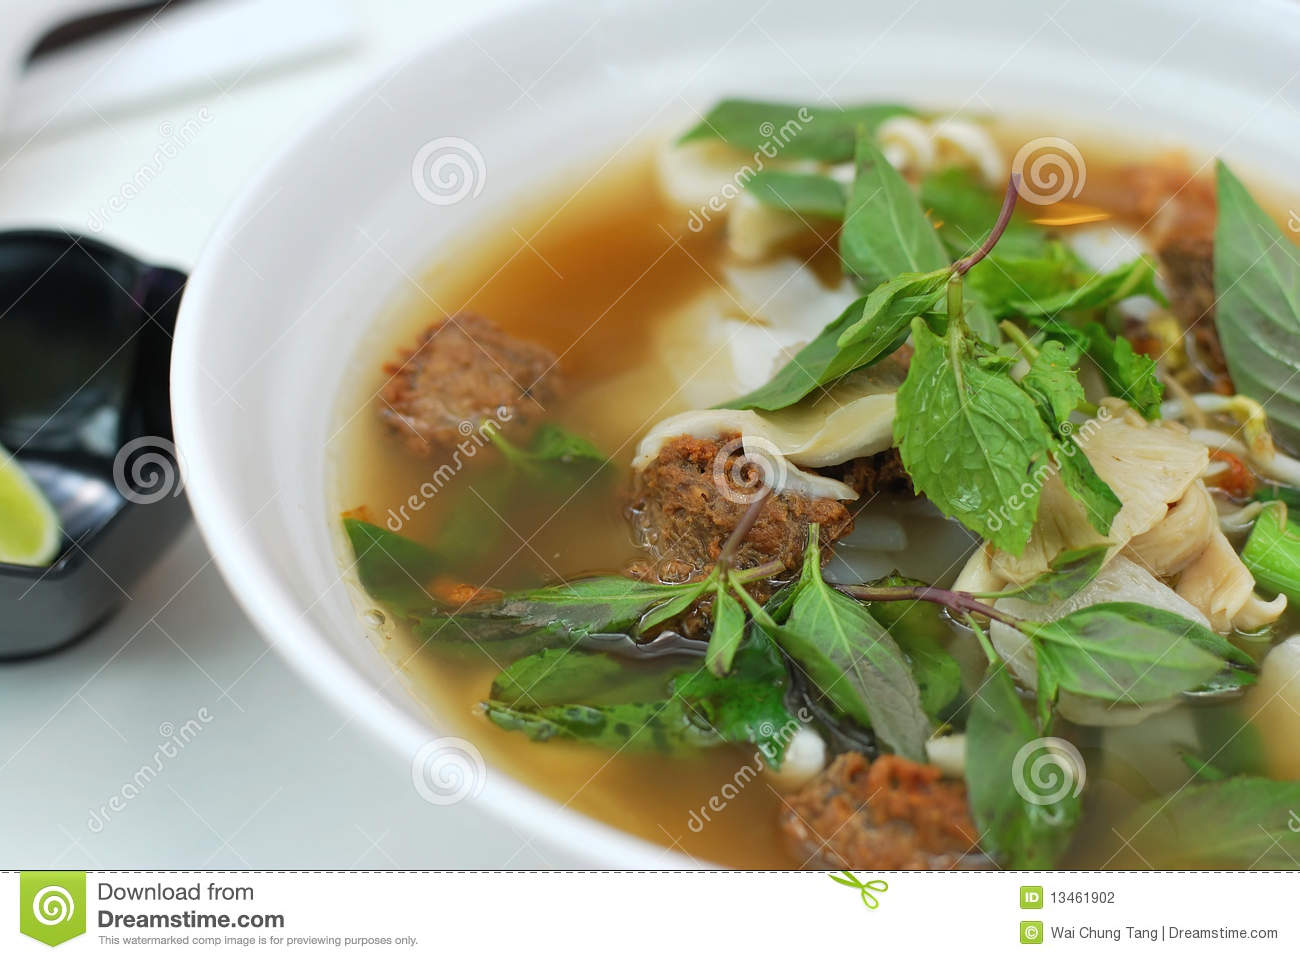 Sumptuous looking Vietnamese style noodle soup consisting of mock meat ...